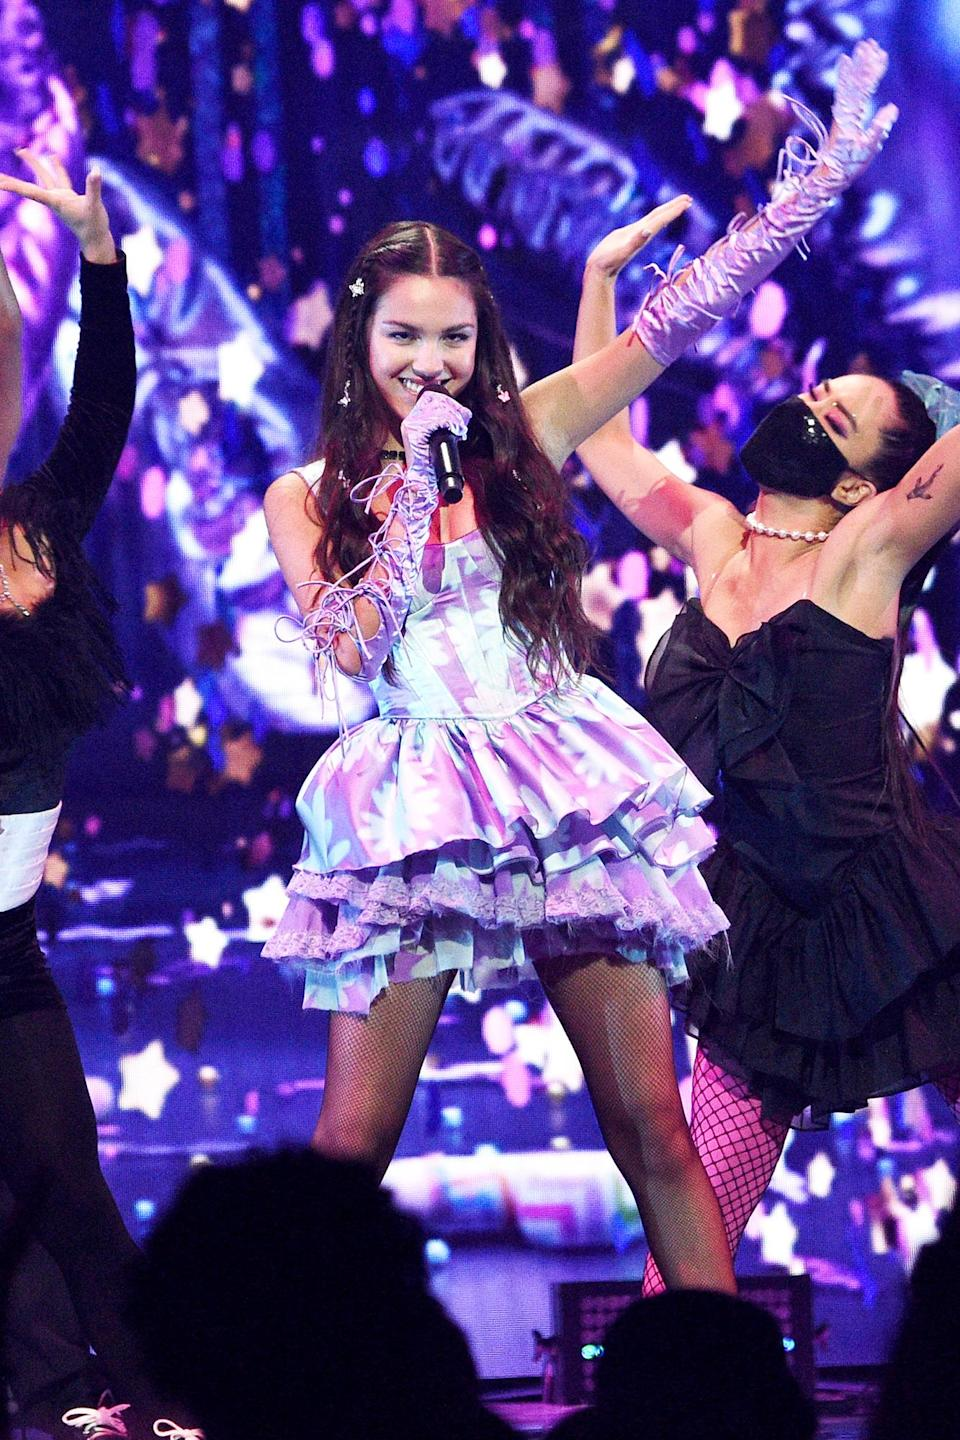 <p>Olivia Rodrigo performs at the 2021 MTV Video Music Awards at Barclays Center on Sept. 12 in Brooklyn, New York.</p>